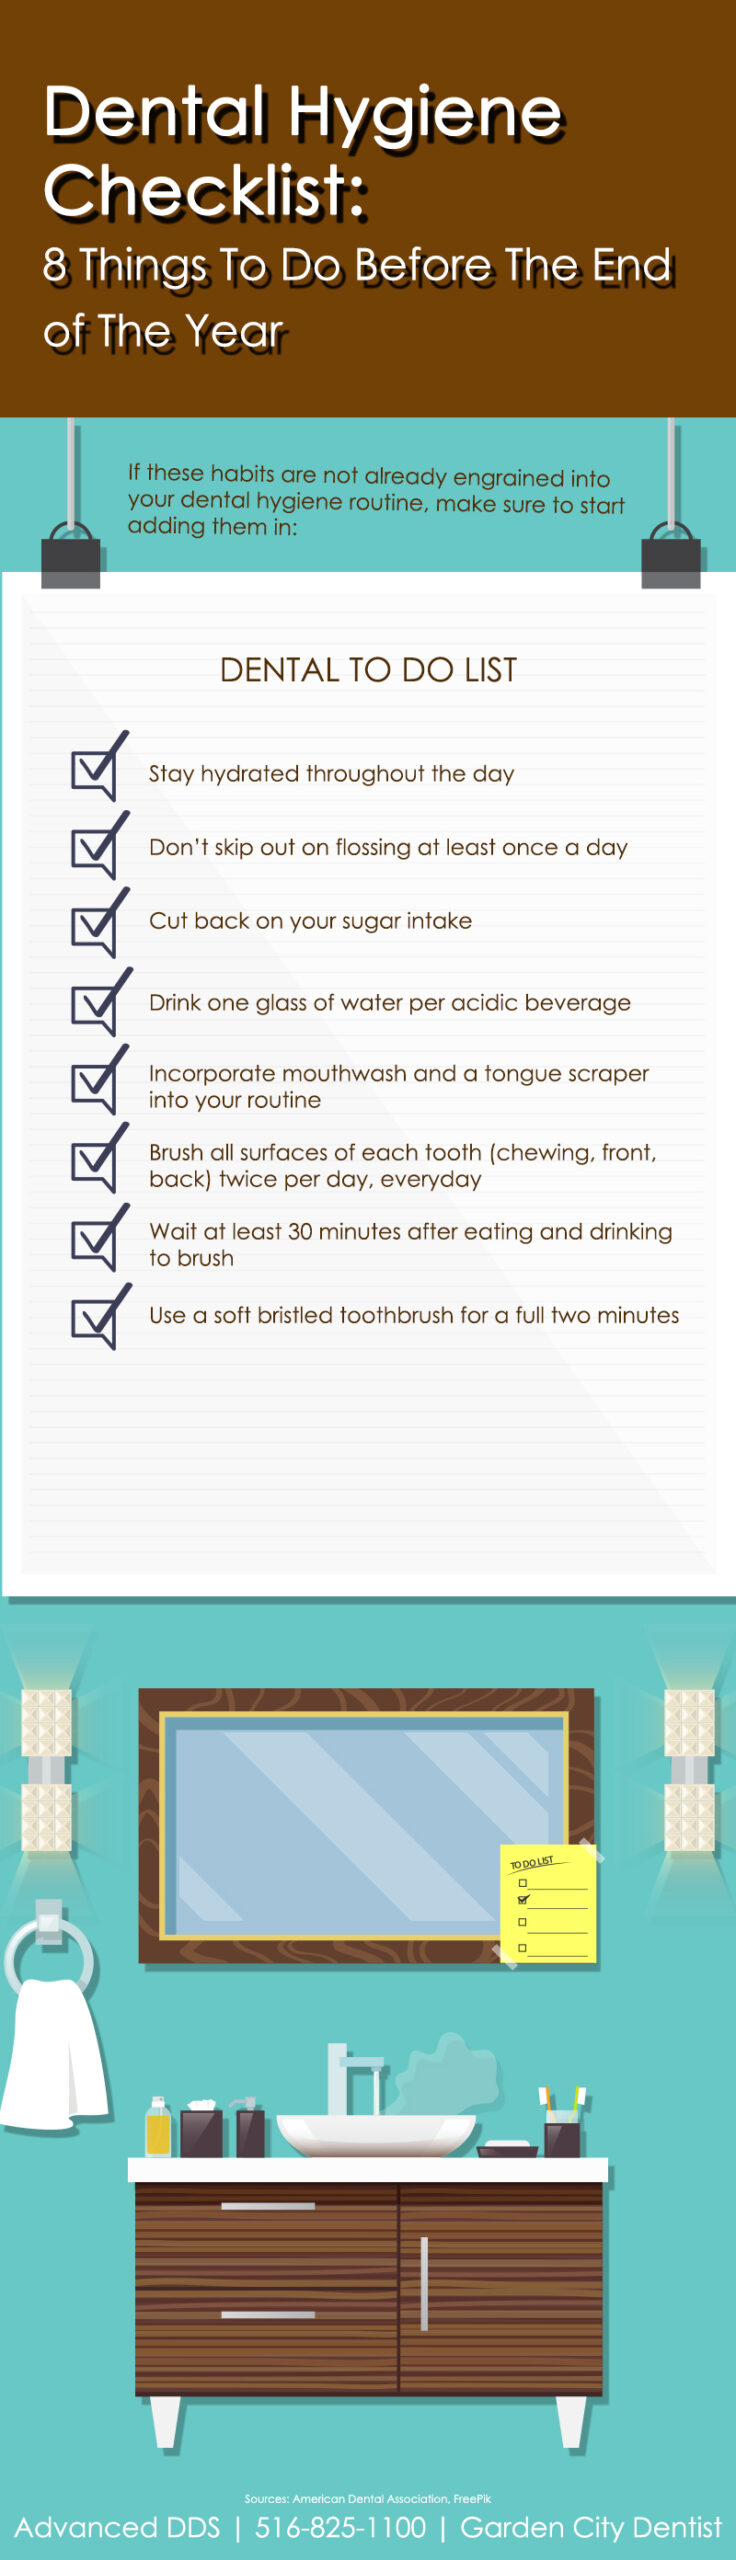 infographic describing 8 dental hygiene things to do before the end of the year